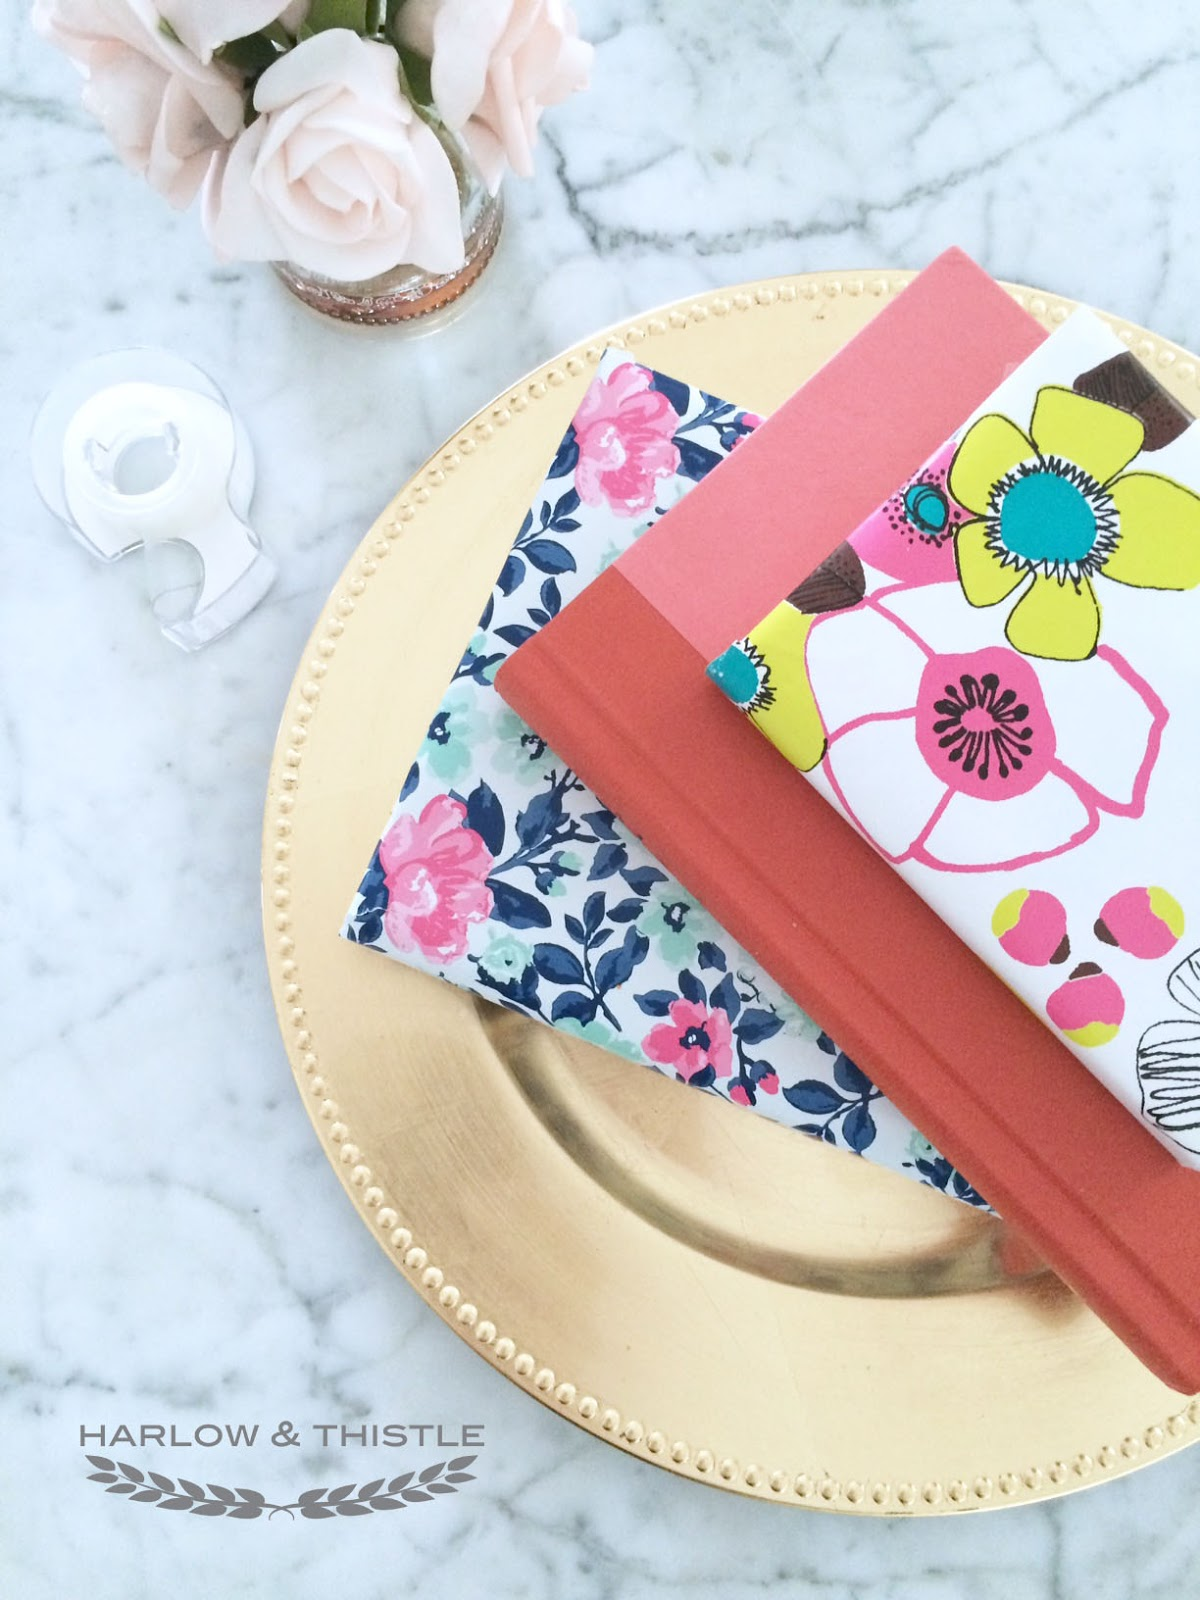 Diy Book Cover Paper Bag : Diy wrapping paper book cover harlow thistle home